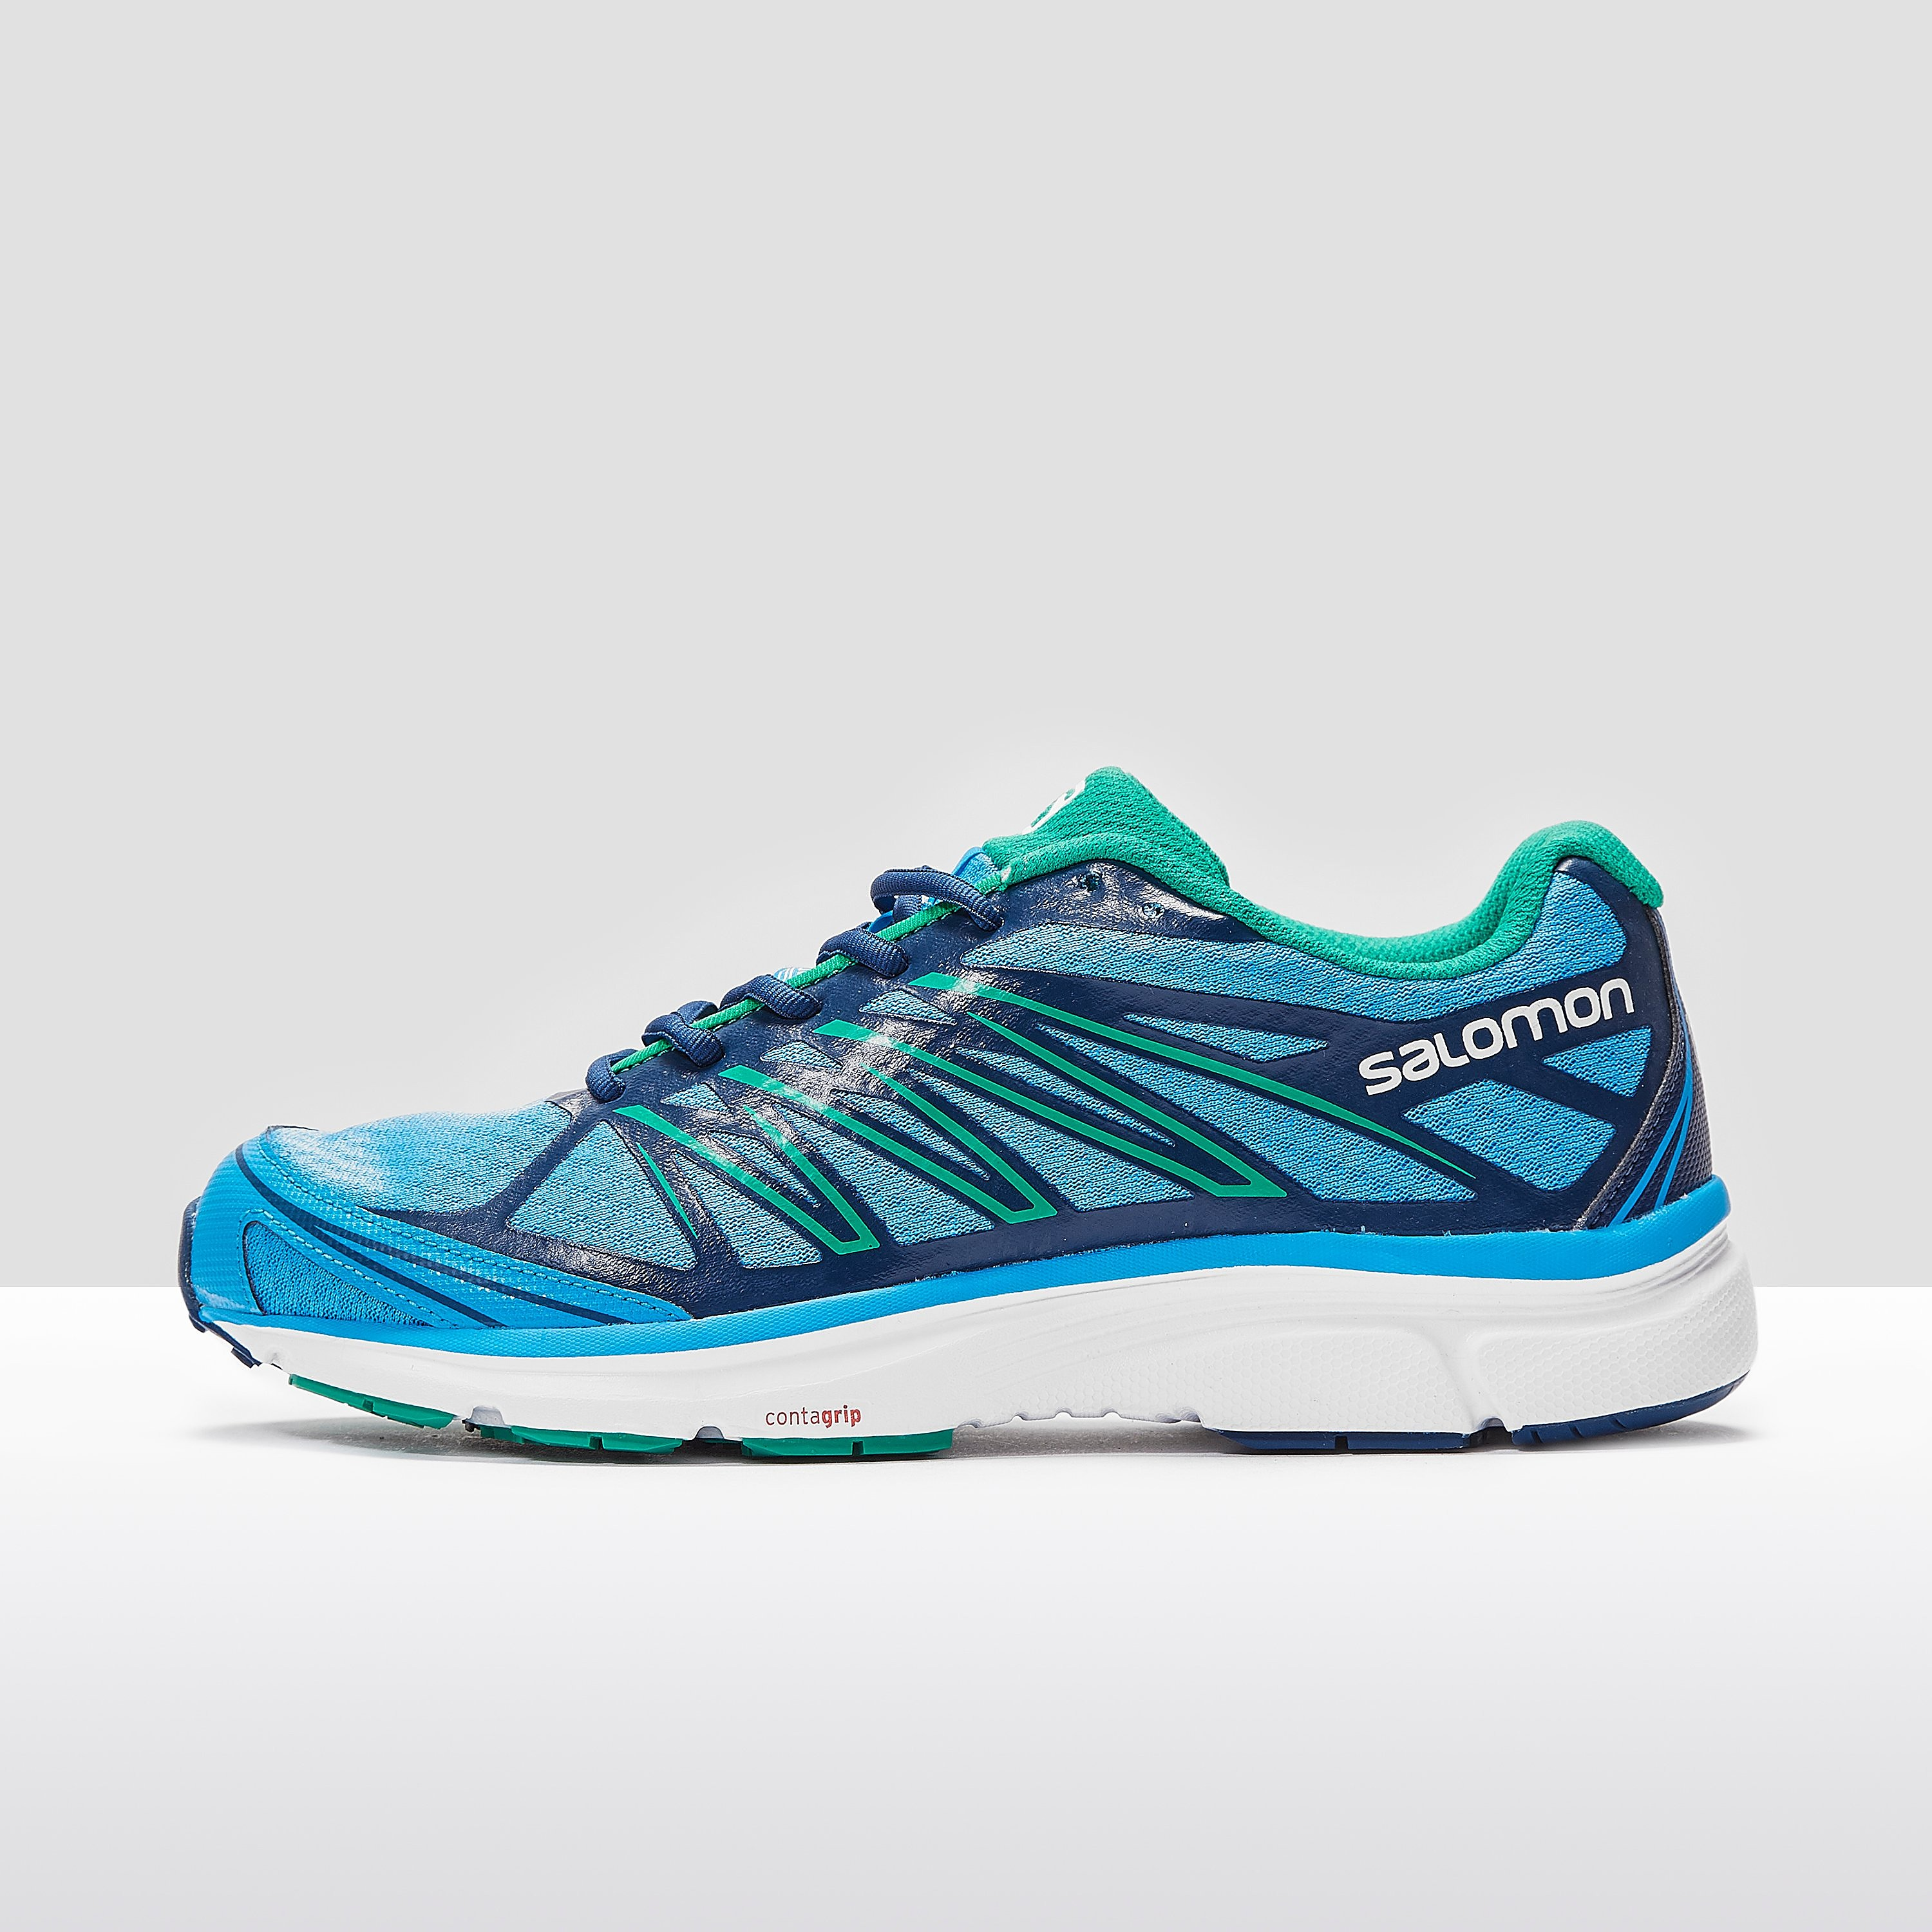 Salomon X-Tour 2 Men's Trail Running Shoe